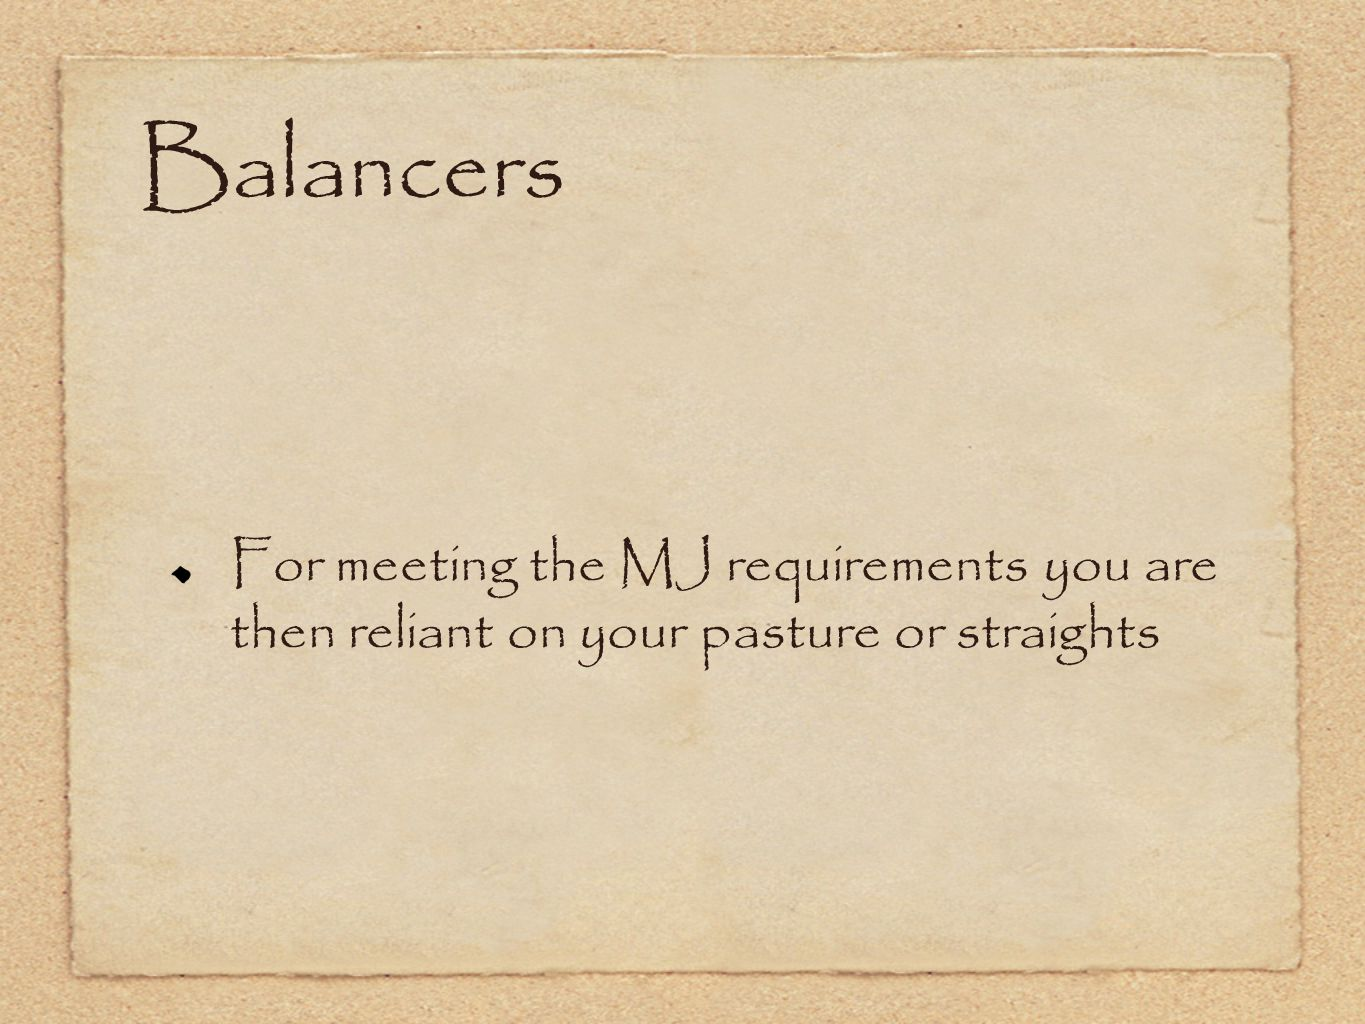 Balancers For meeting the MJ requirements you are then reliant on your pasture or straights